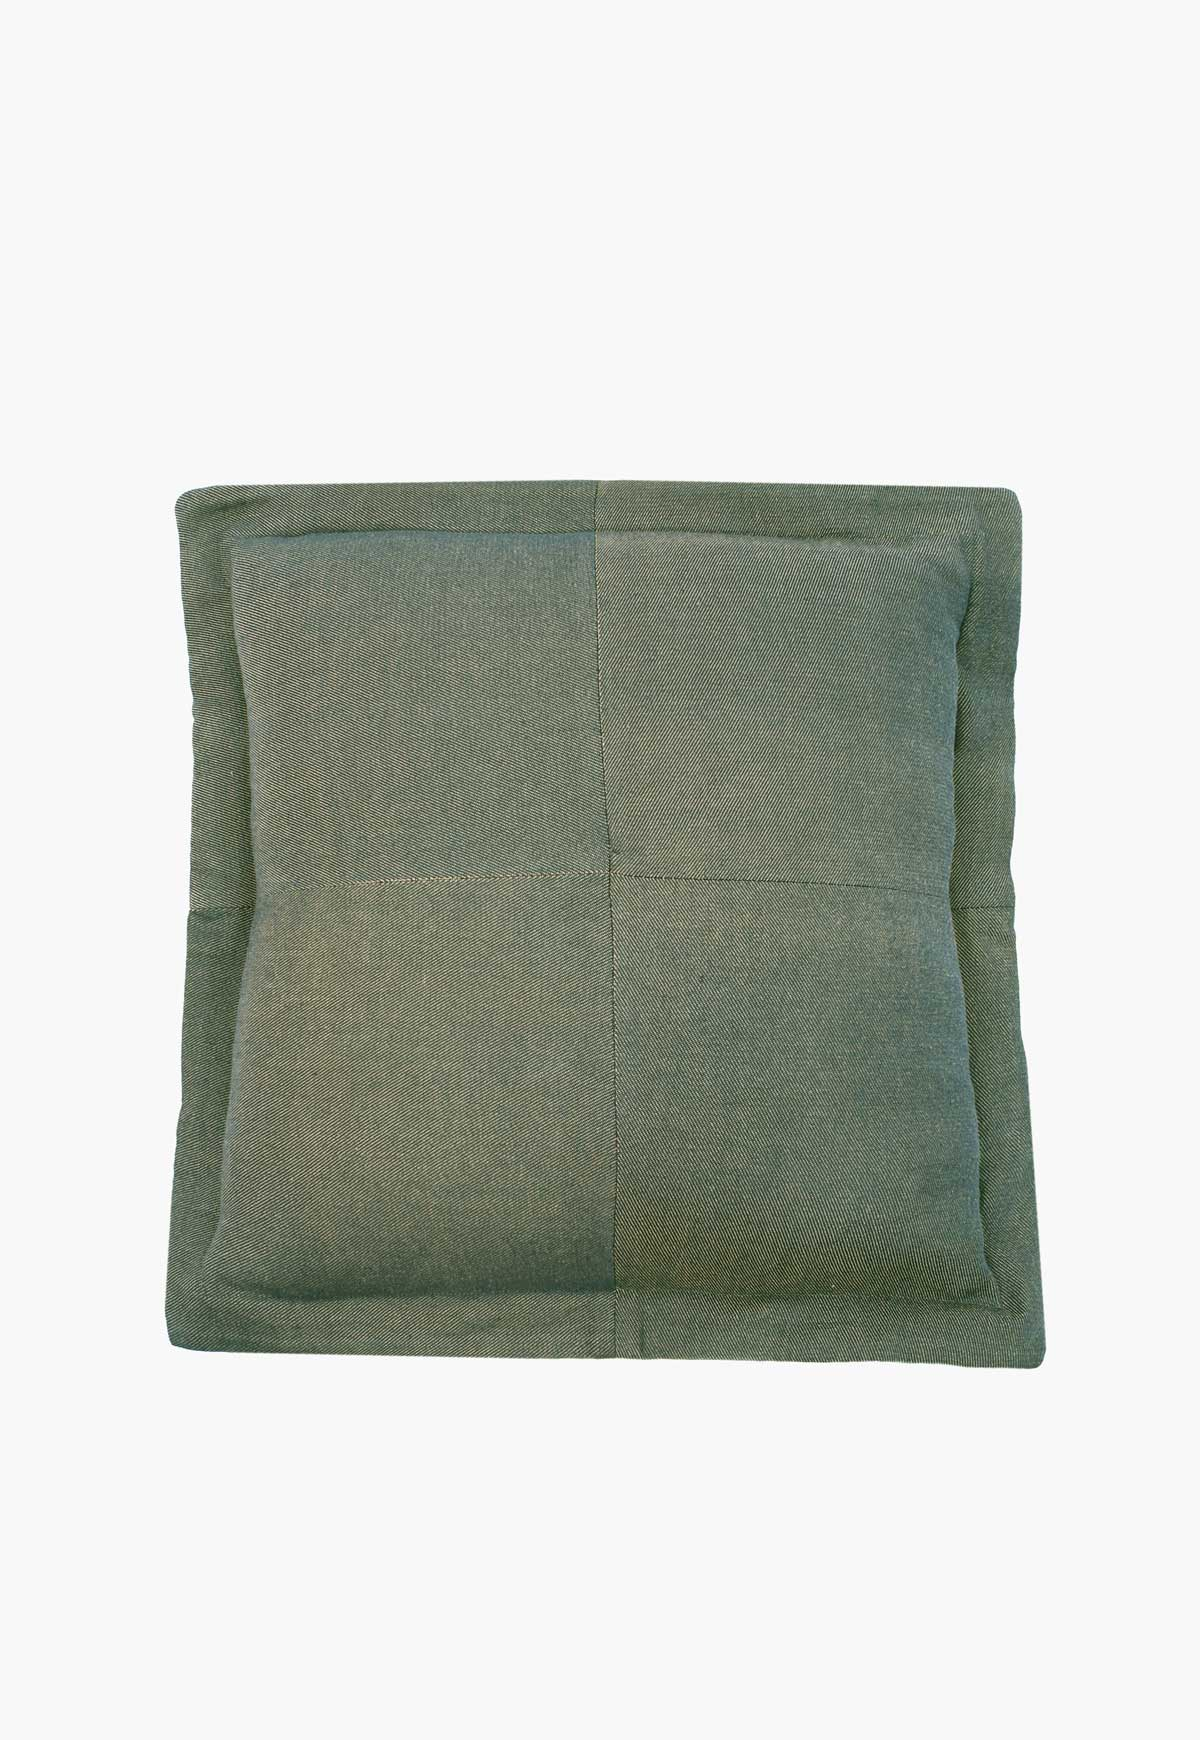 Godhuli Twill Pillow Cover